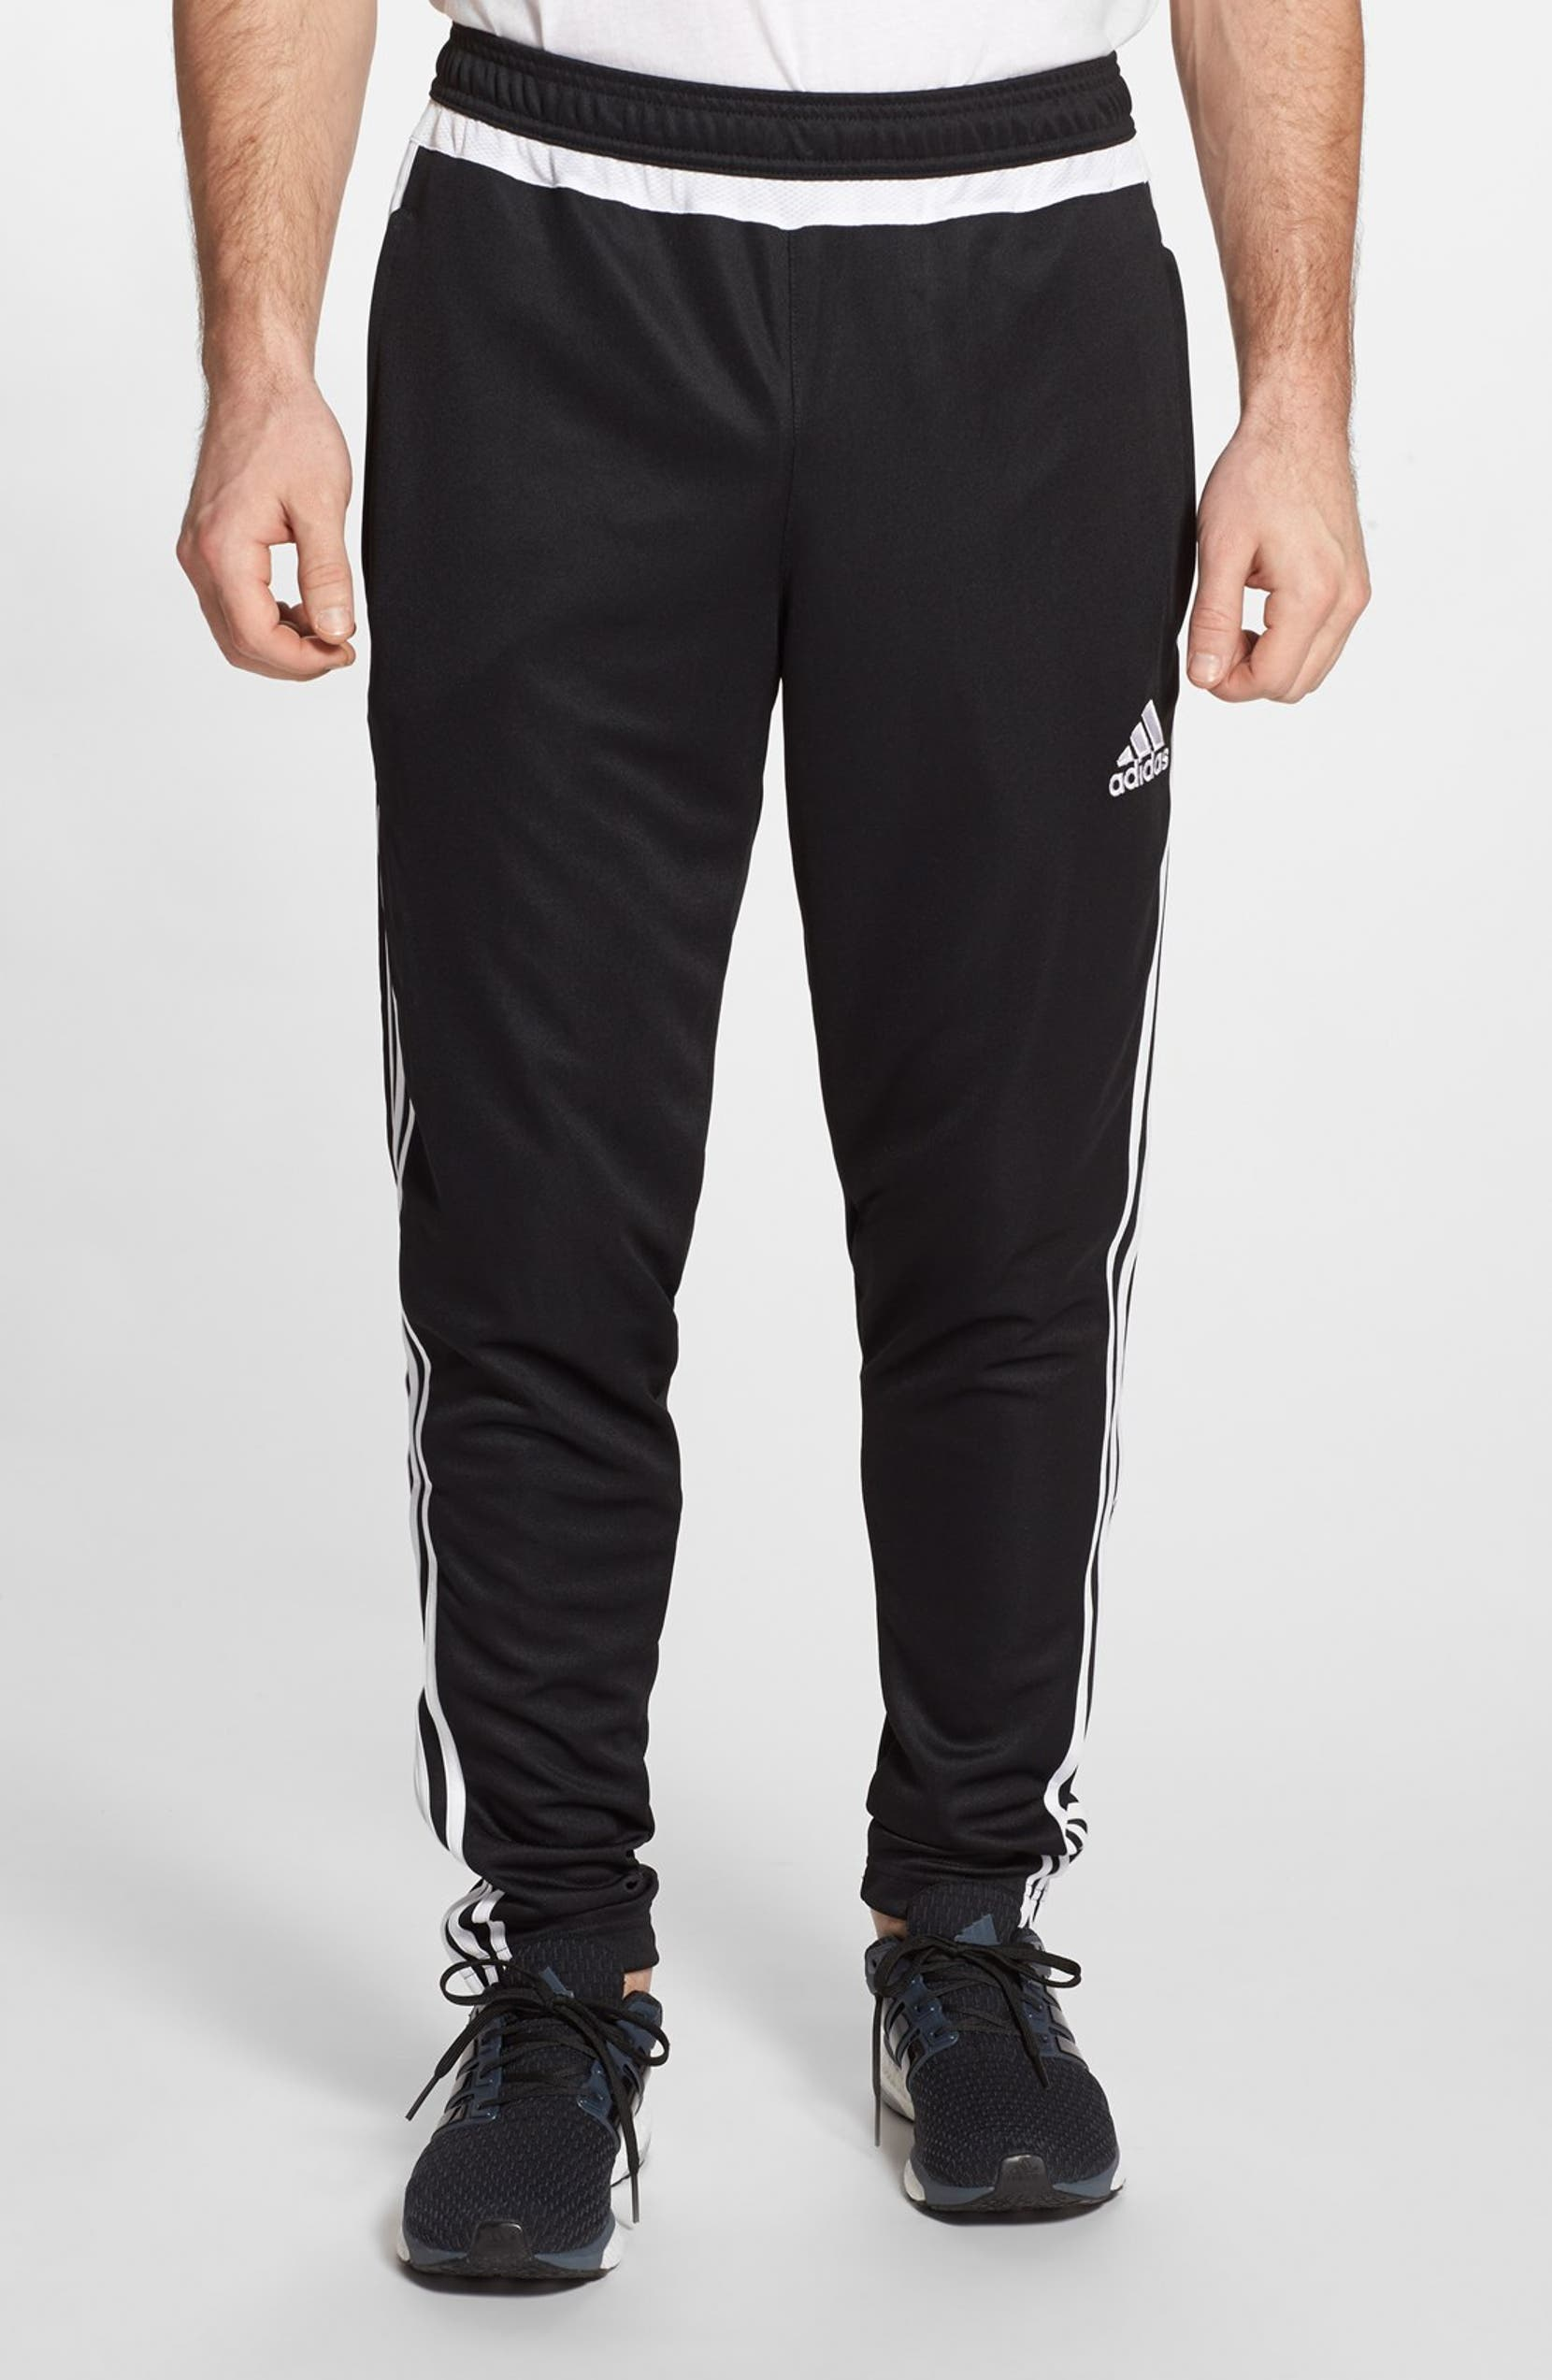 reputable site 873cb a7889 adidas Tiro 15 Slim Fit CLIMACOOL® Training Pants  Nordstrom